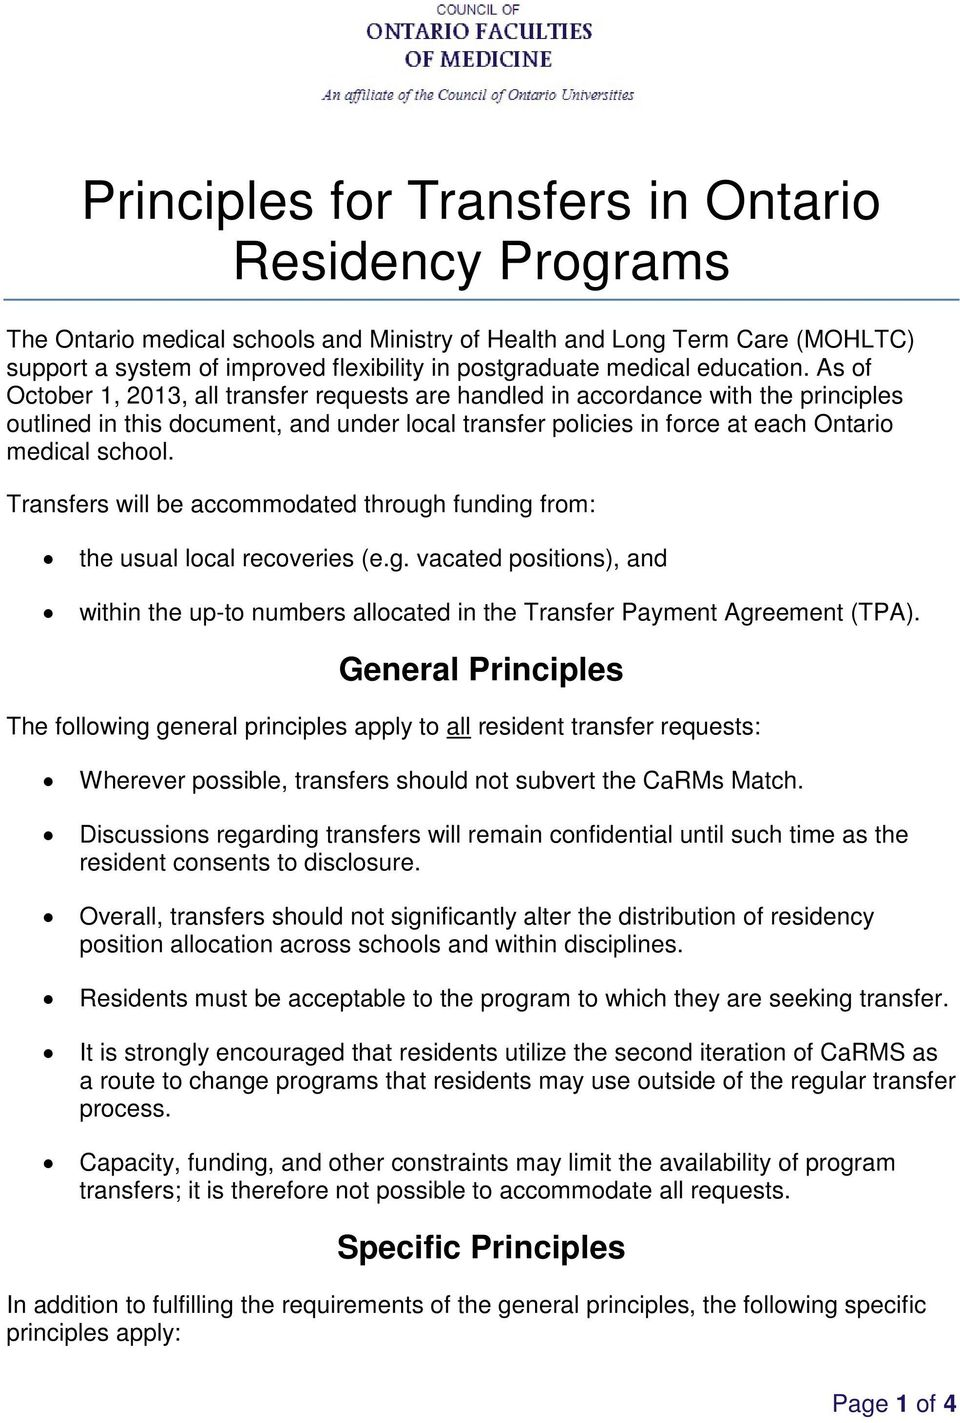 As of October 1, 2013, all transfer requests are handled in accordance with the principles outlined in this document, and under local transfer policies in force at each Ontario medical school.